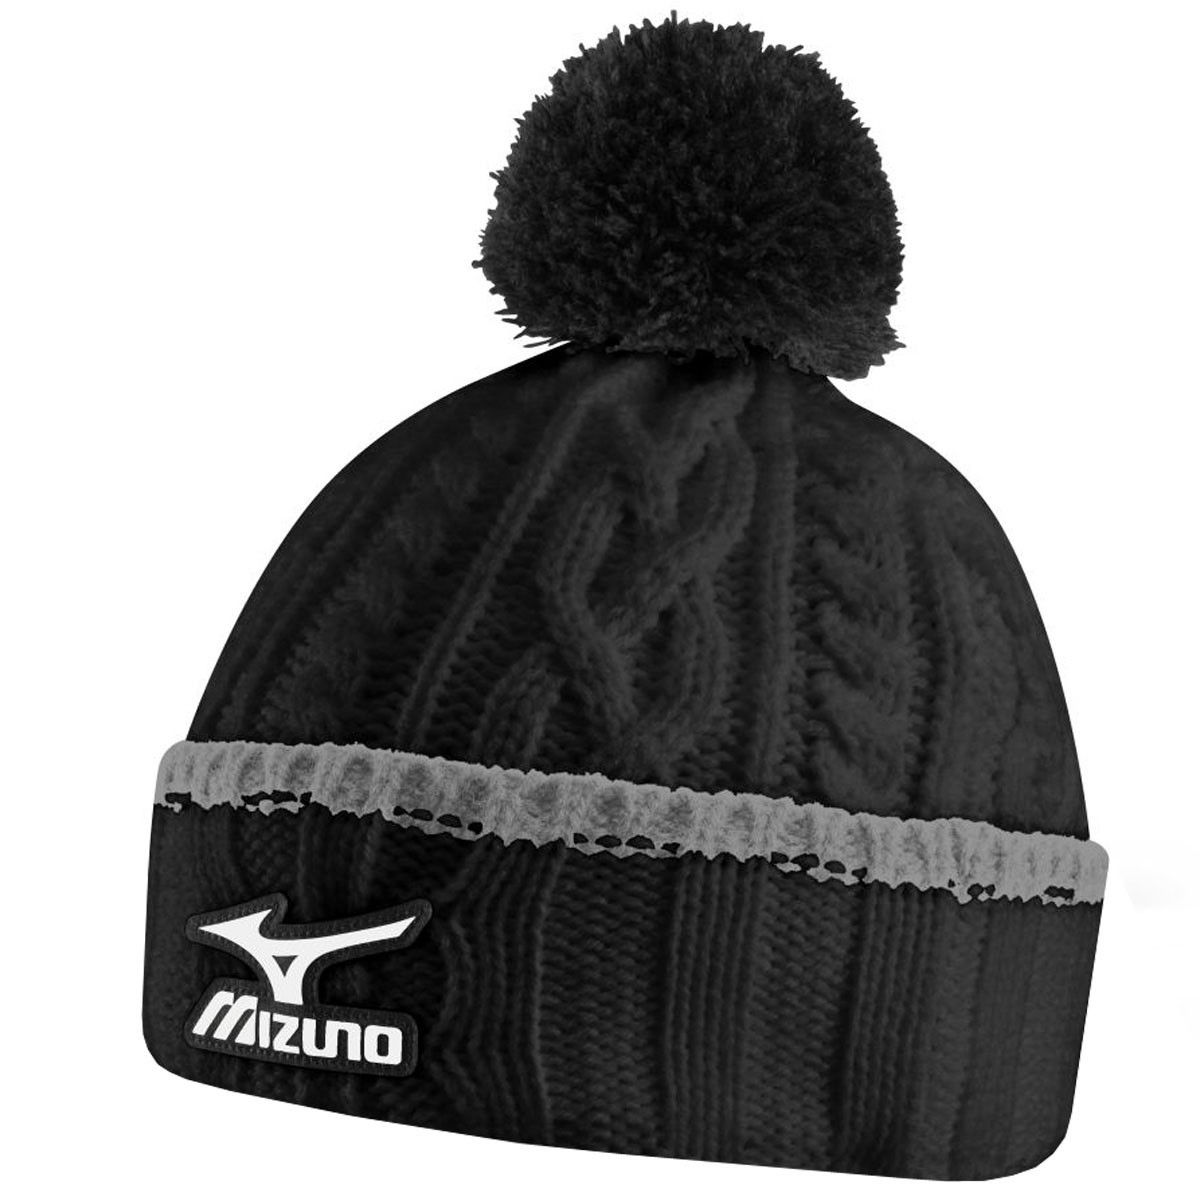 Best Of Mizuno Golf 2015 Mens Cable Knit Bobble Pom Pom Knitted Winter Knit Hats Of Charming 40 Photos Winter Knit Hats